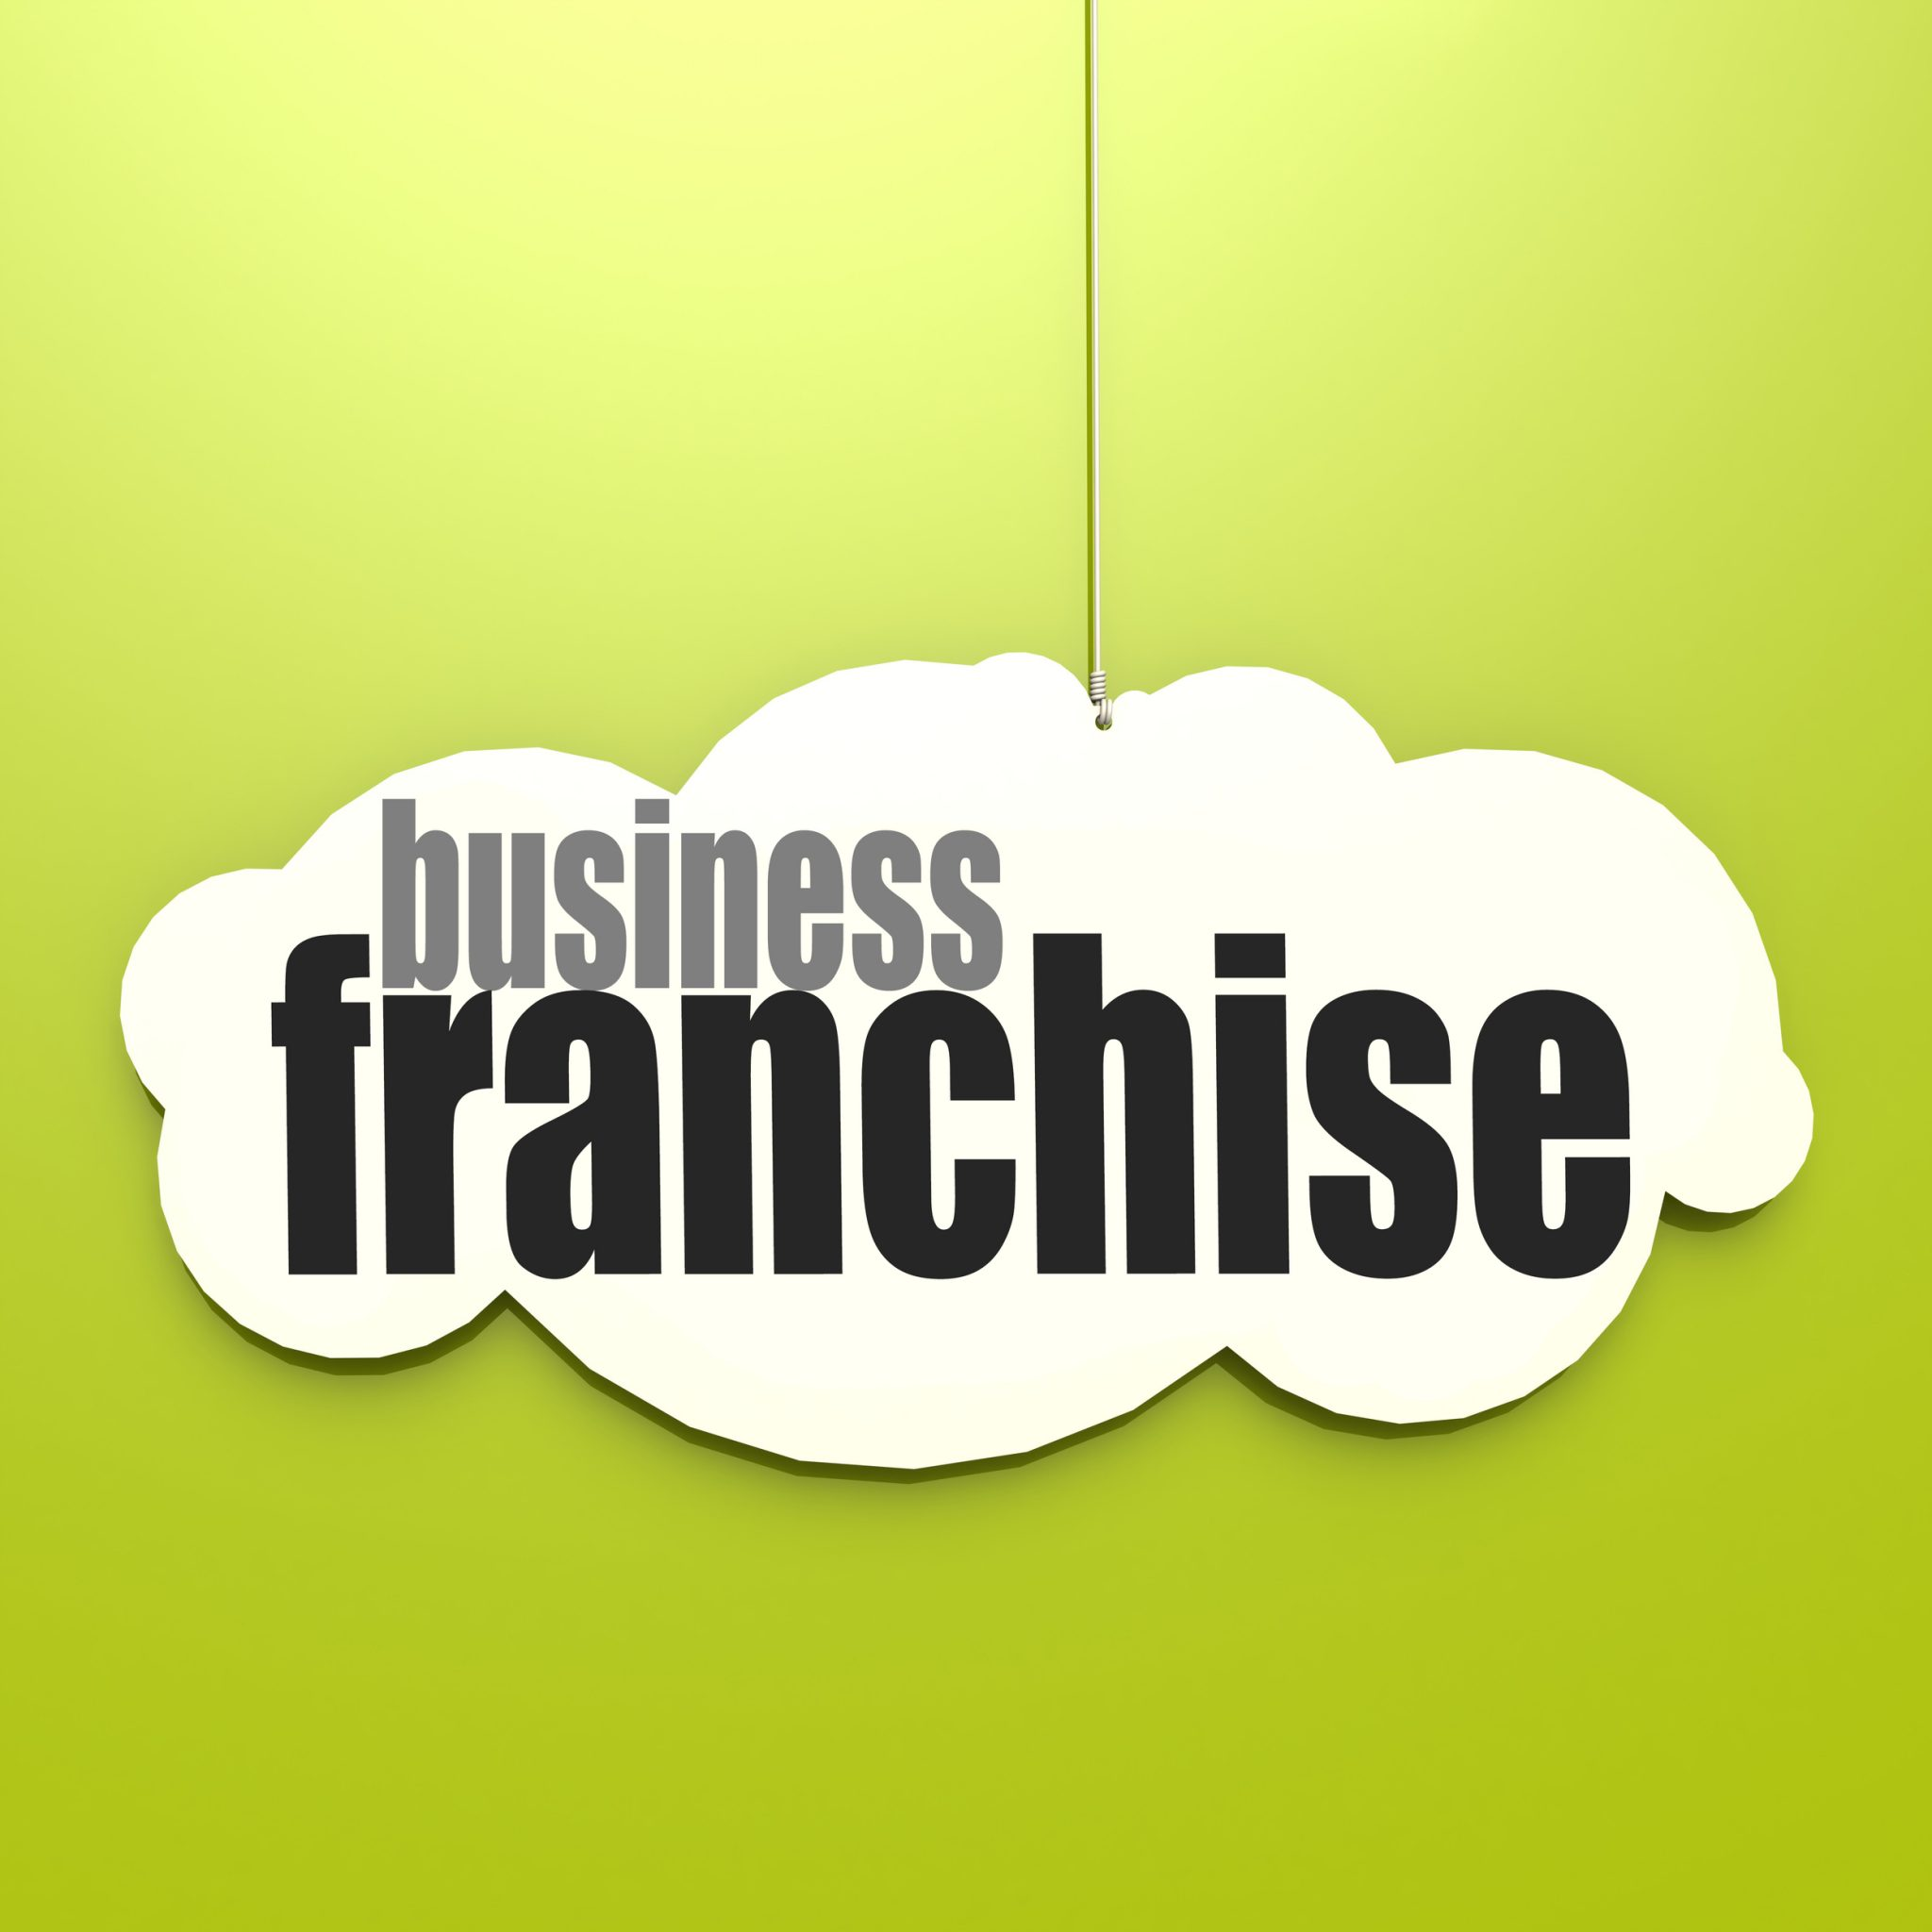 specialstrong- business franchise opportunity approach